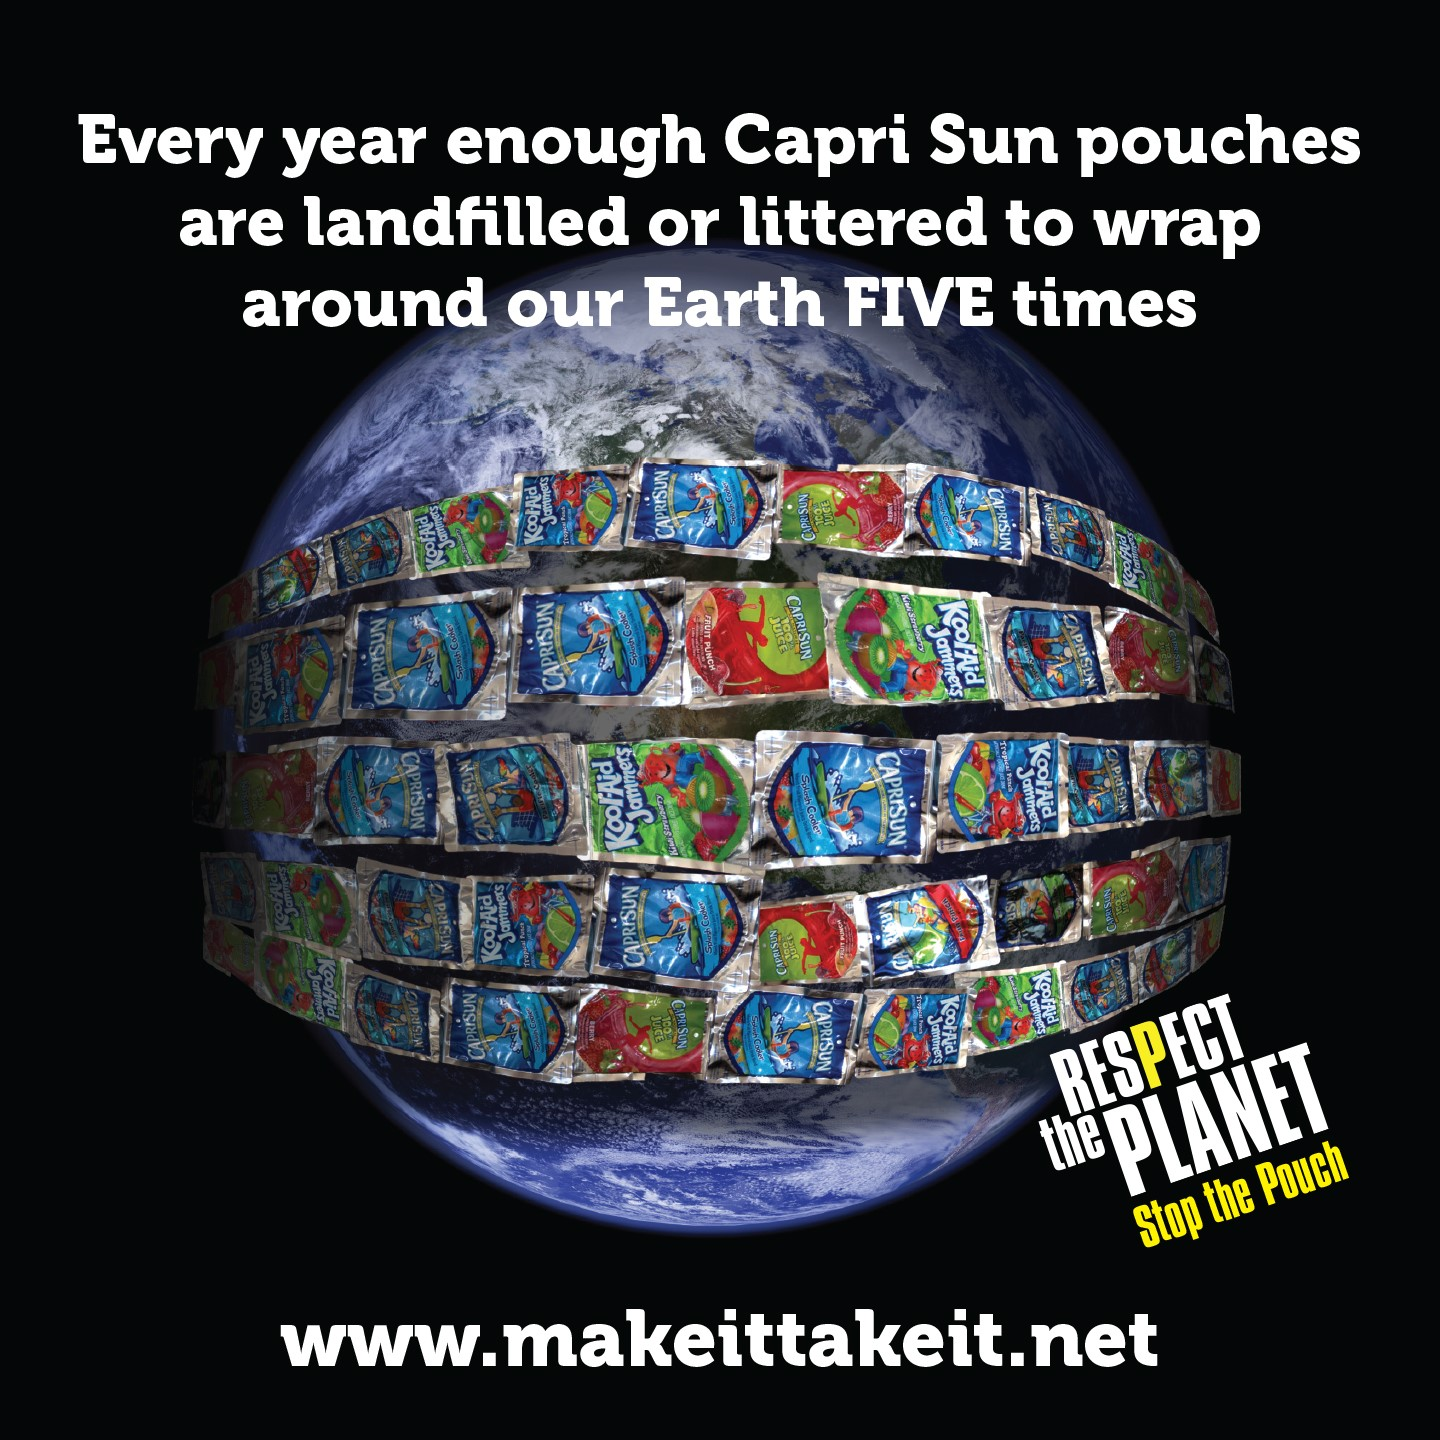 MITI_Capri Sun Infographic_website.jpg